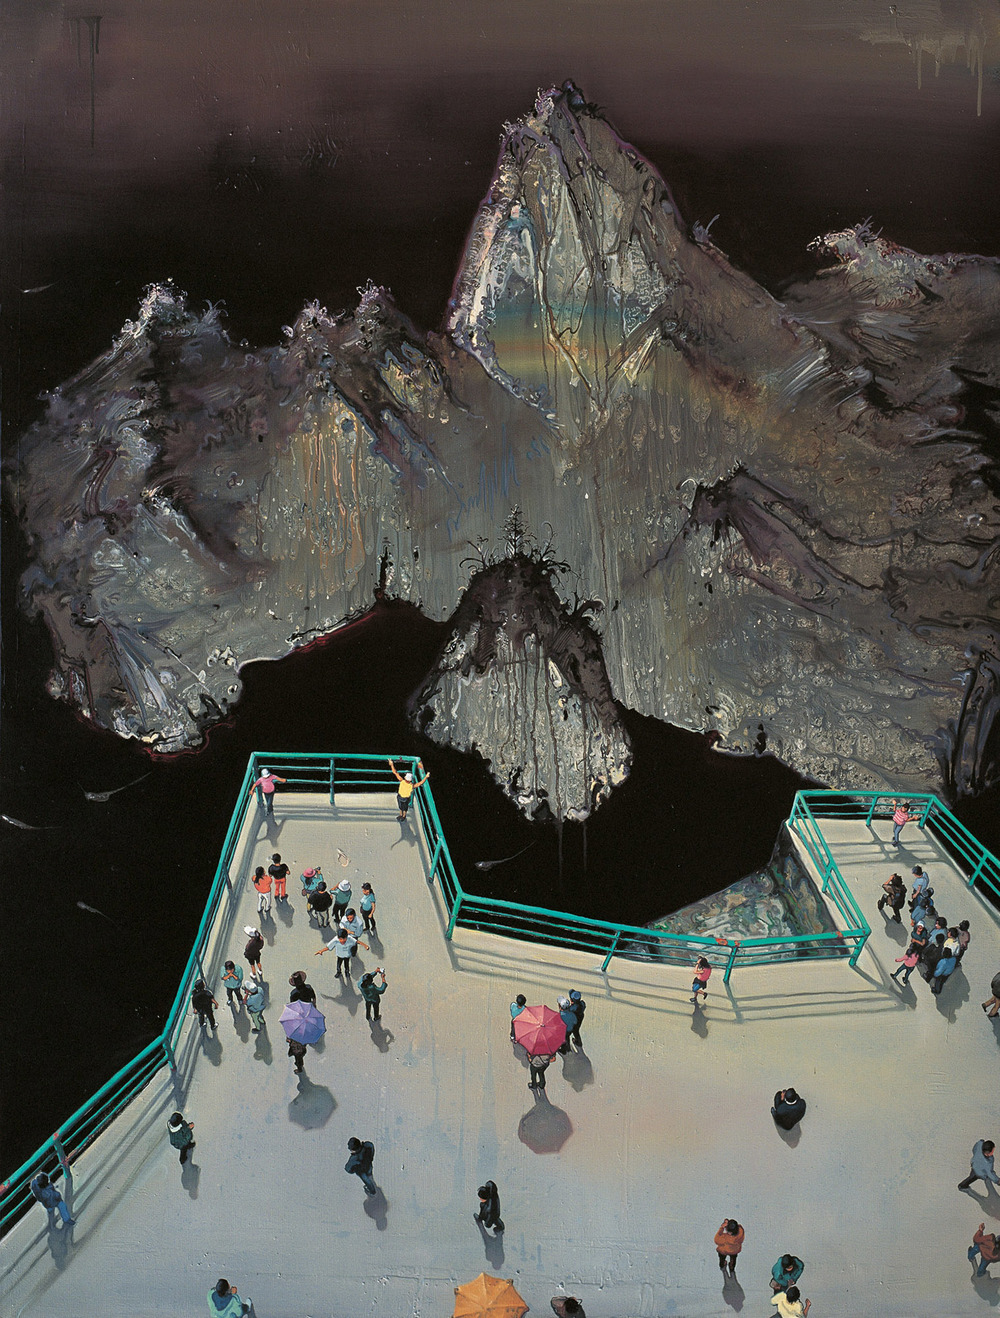 Zhou Jinhua 周金华, Viewing Platform 大看台, 2010, Oil on canvas 布面油画, 190 x 145 cm